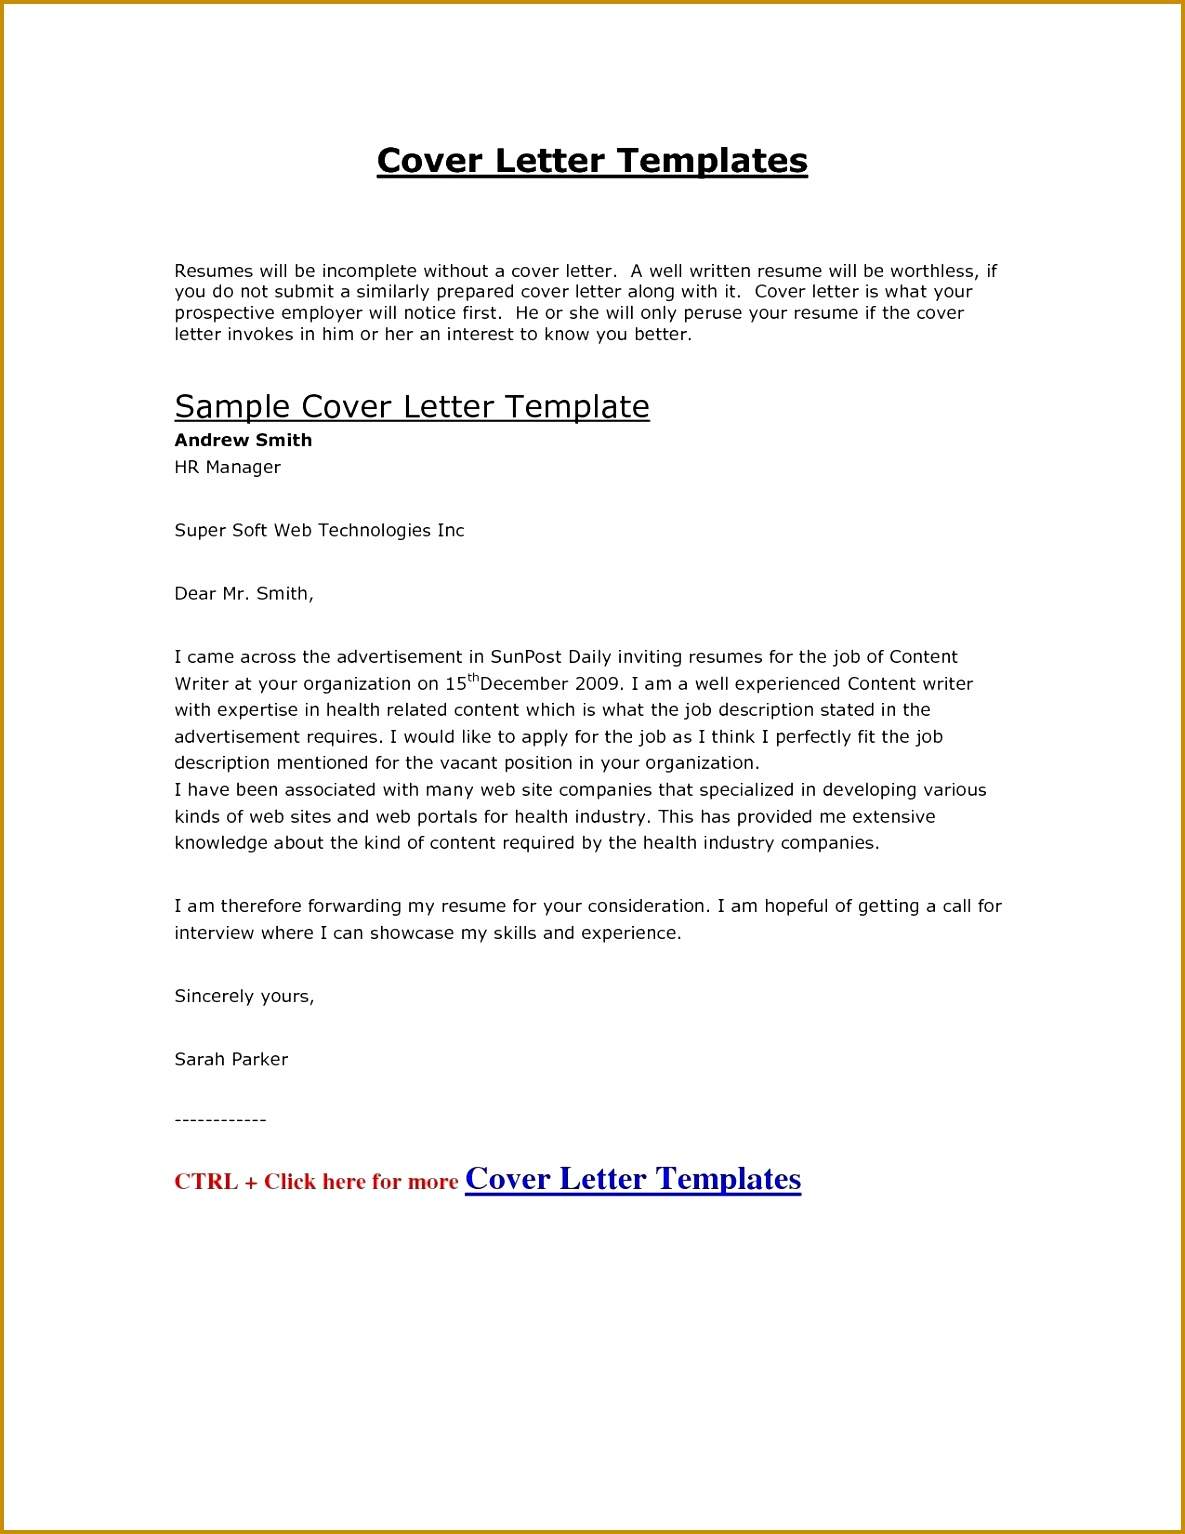 Job Application Letter Format Template Copy Cover Letter Template Hr Fresh A Good Cover Letter Sample Best Od Best Good Covering Letter Template Gallery 15341185